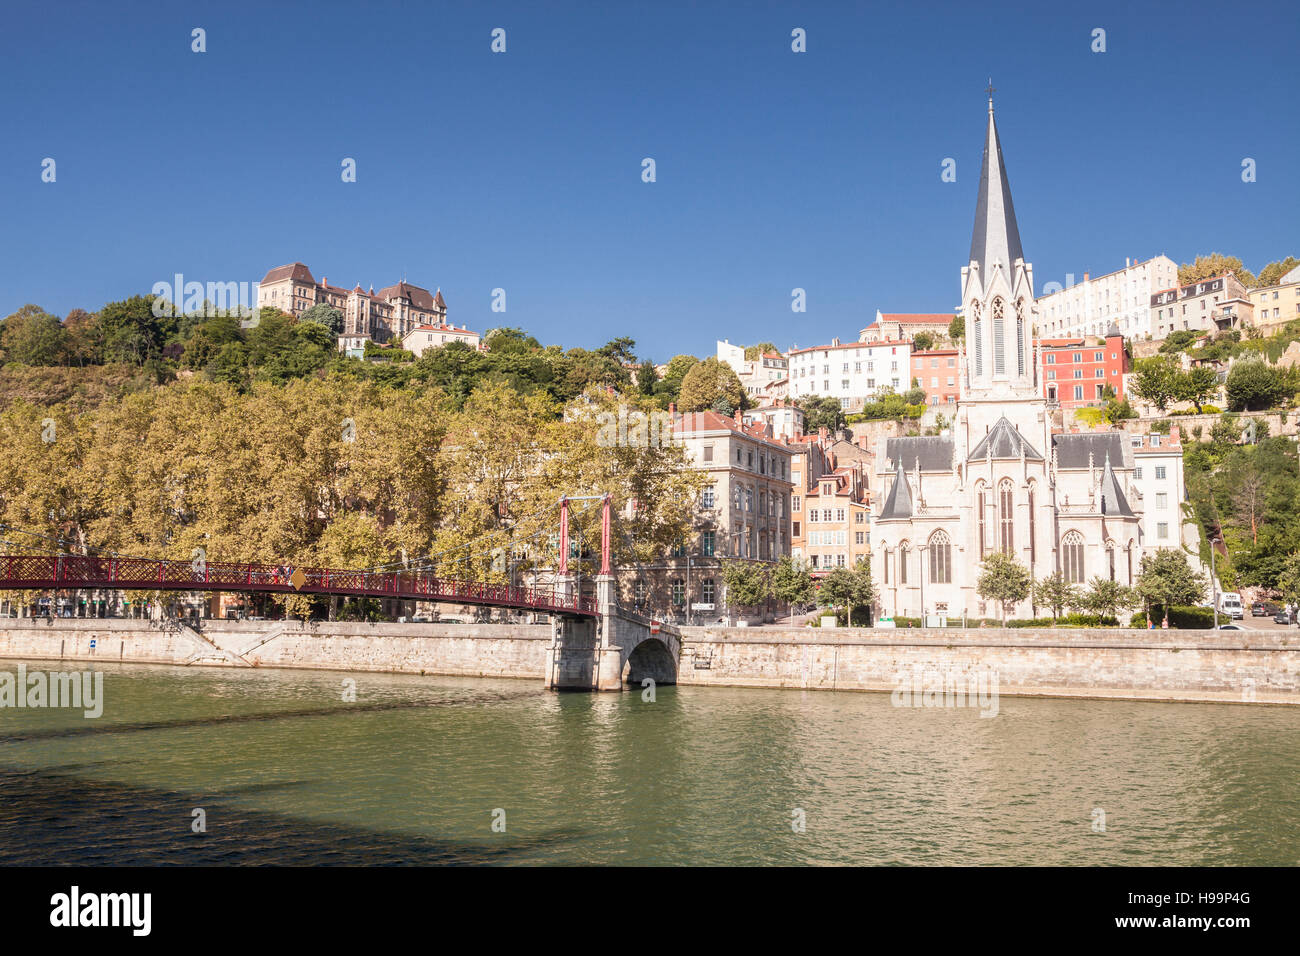 Eglise and Passerelle Saint George in Vieux Lyon. - Stock Image